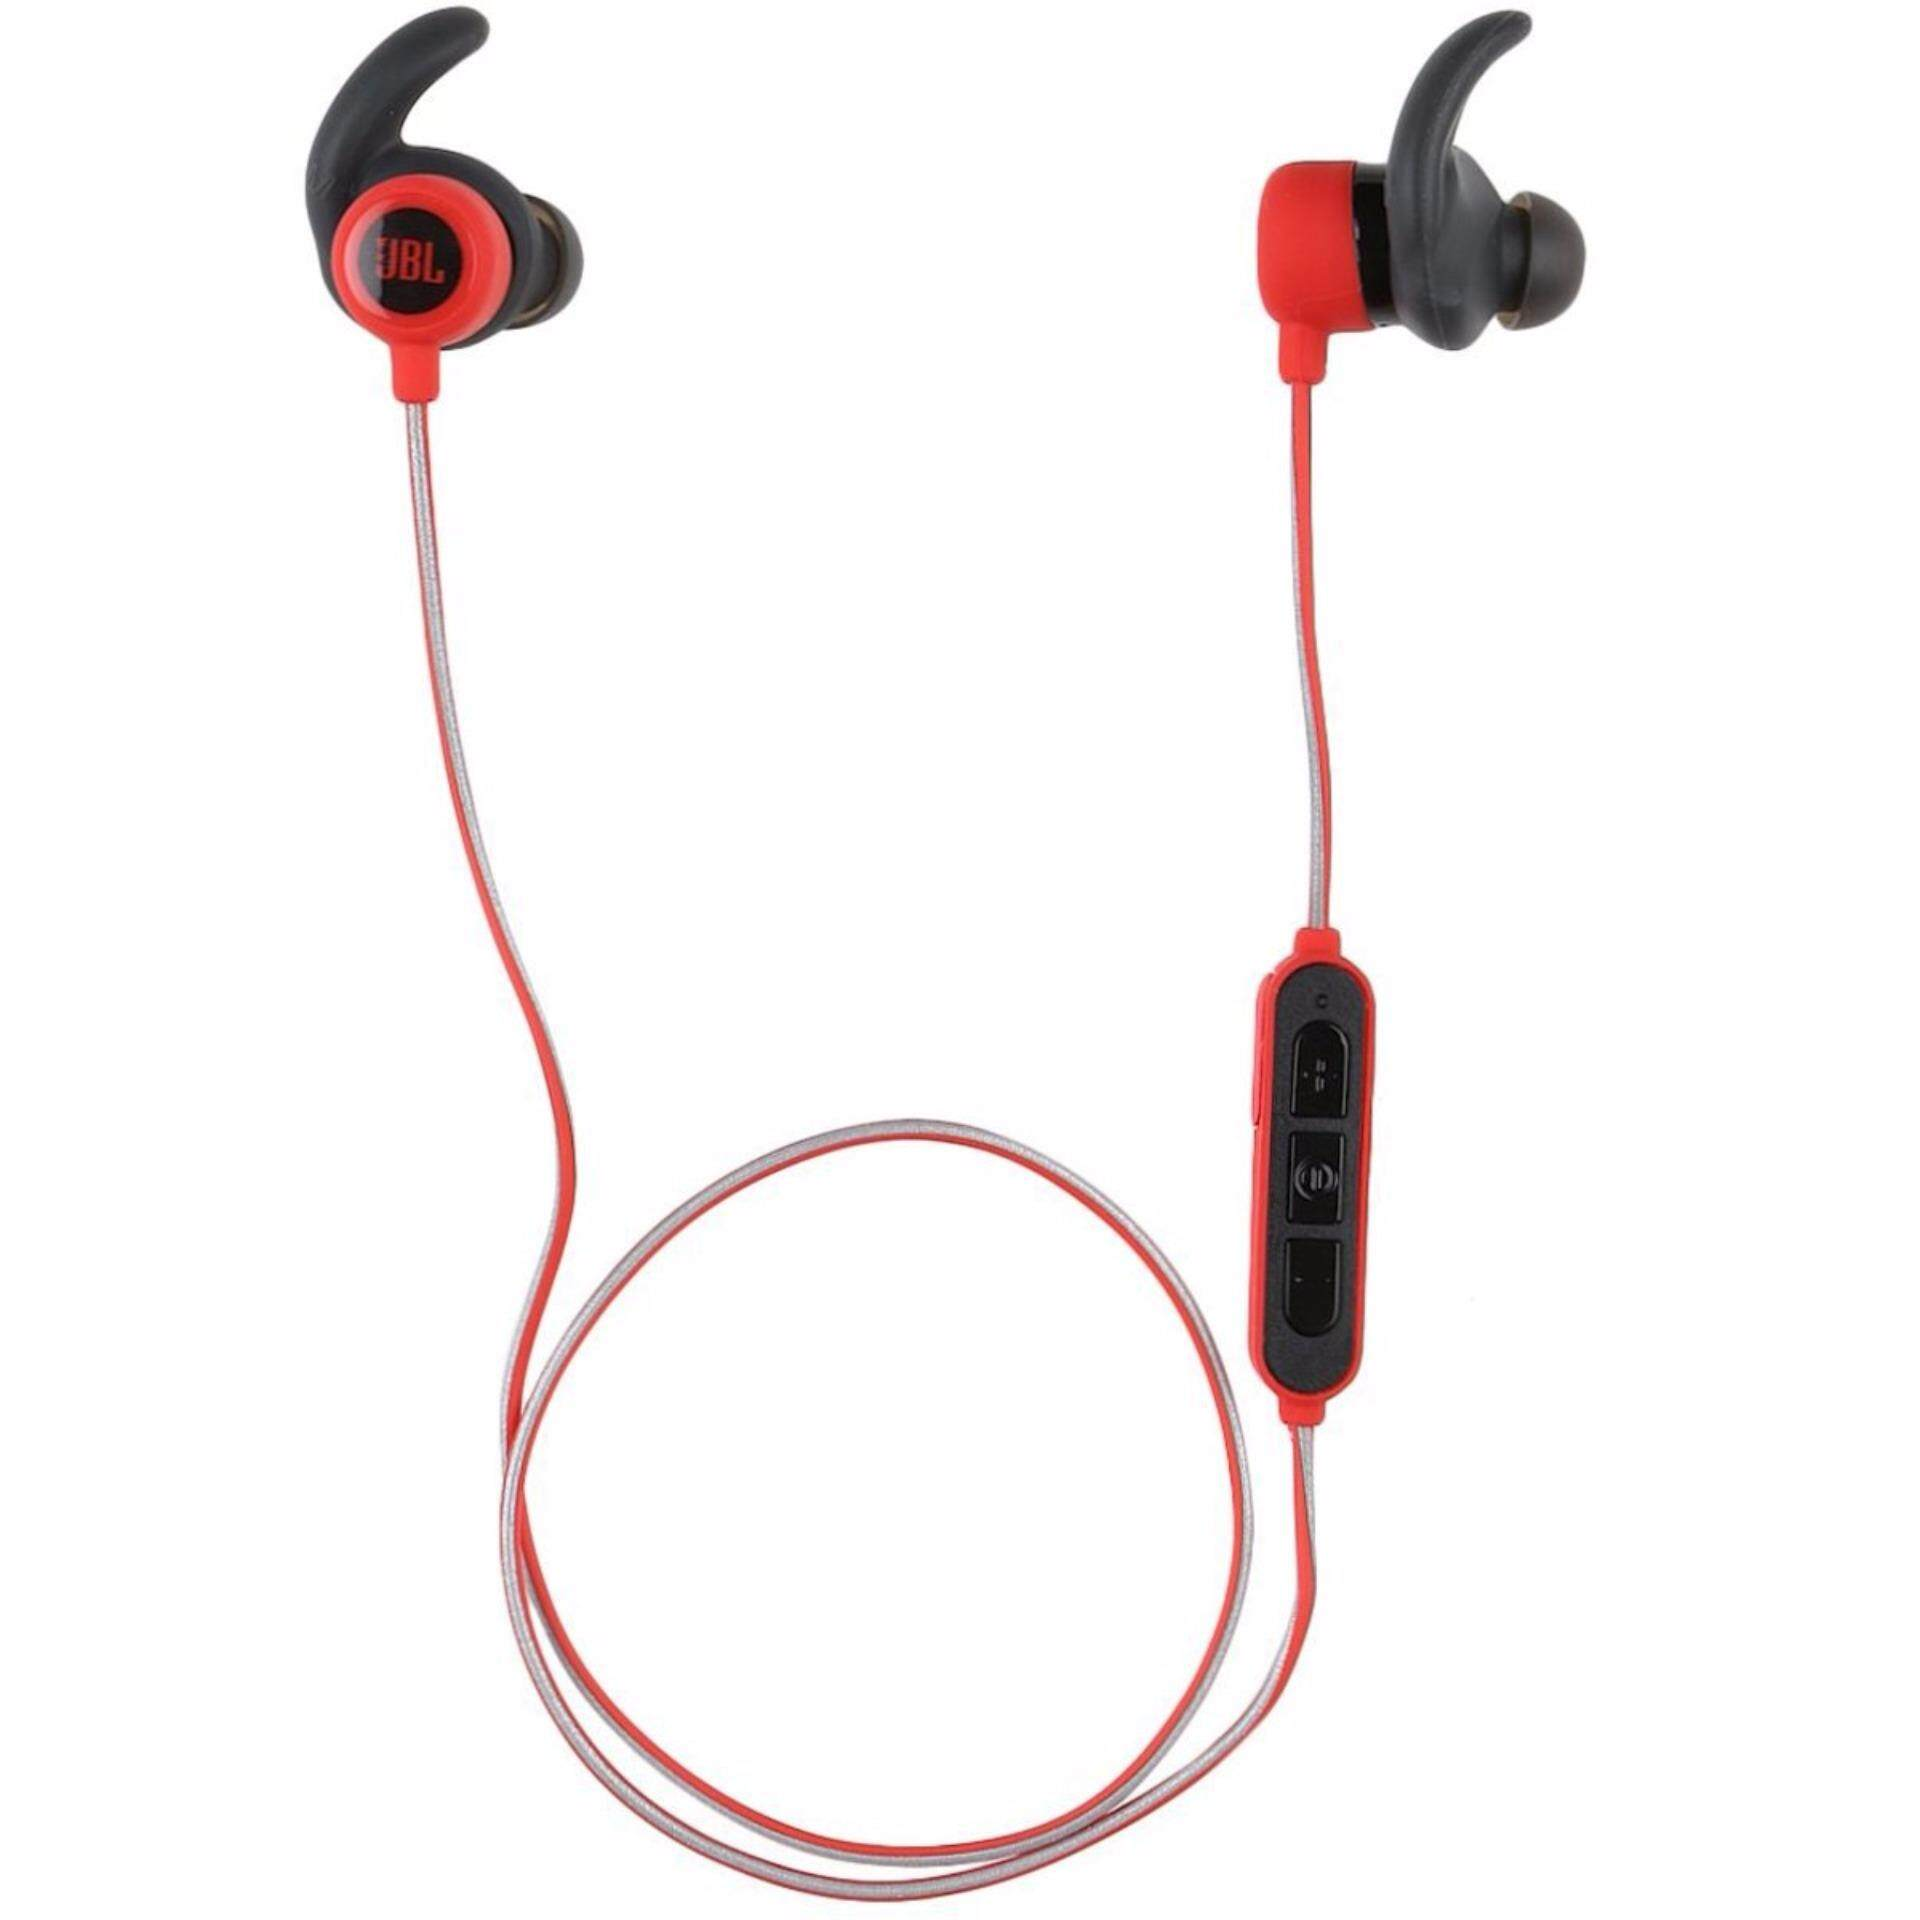 Jbl Flip 2 Speaker Bluetooth Built In Mic Phone Merah 3 Splashproof Portable Reflect Mini Bt Lightest Wireless Sweat Proof Ear Sport Headphones Red Malaysia